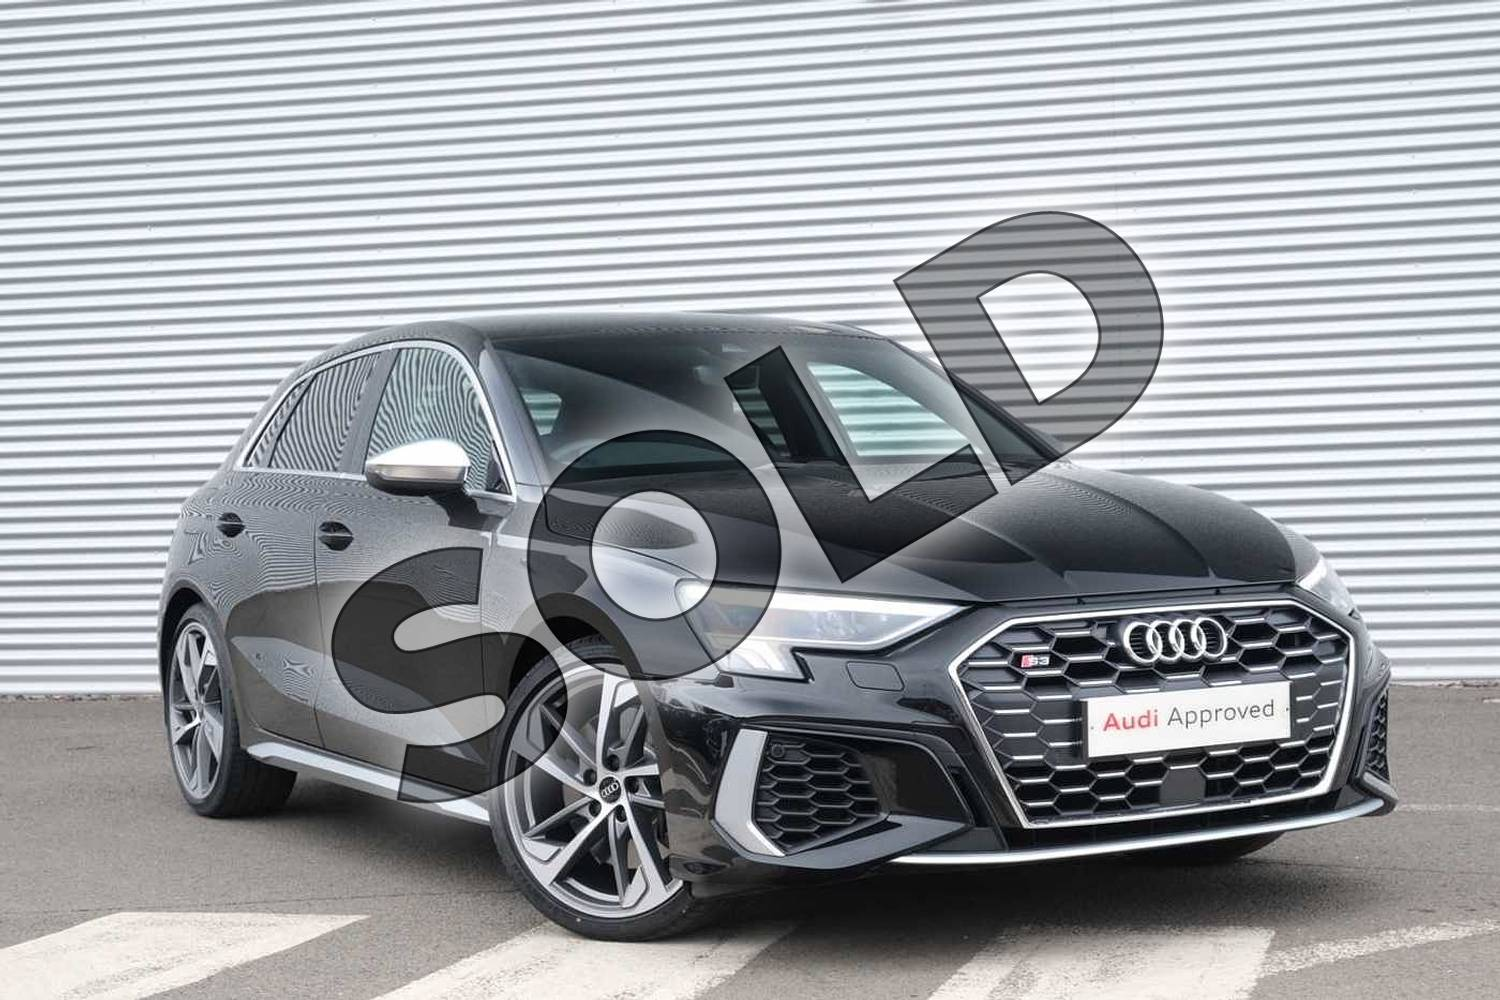 2021 Audi A3 Sportback S3 TFSI Quattro 5dr S Tronic in Myth Black Metallic at Coventry Audi